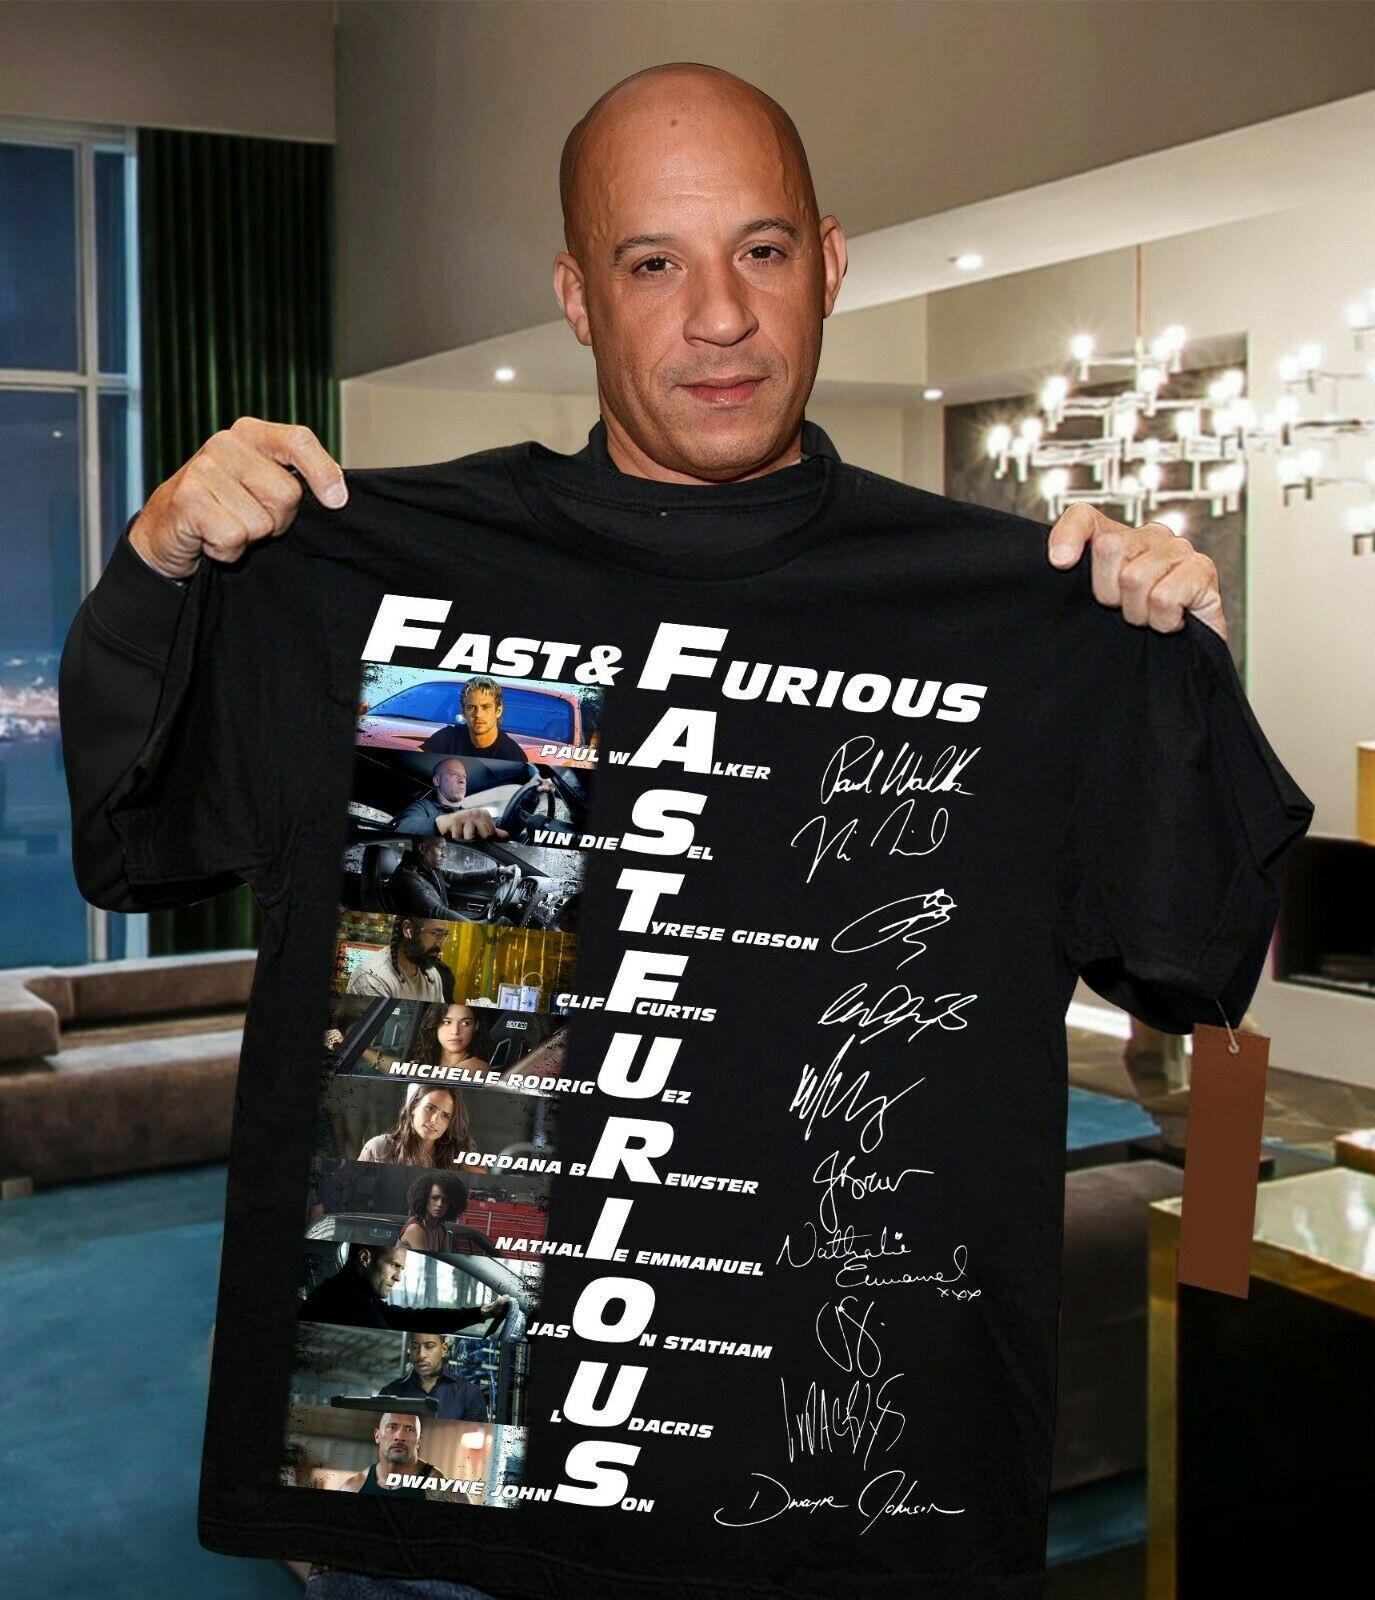 FAST AND FURIOUS SHIRT